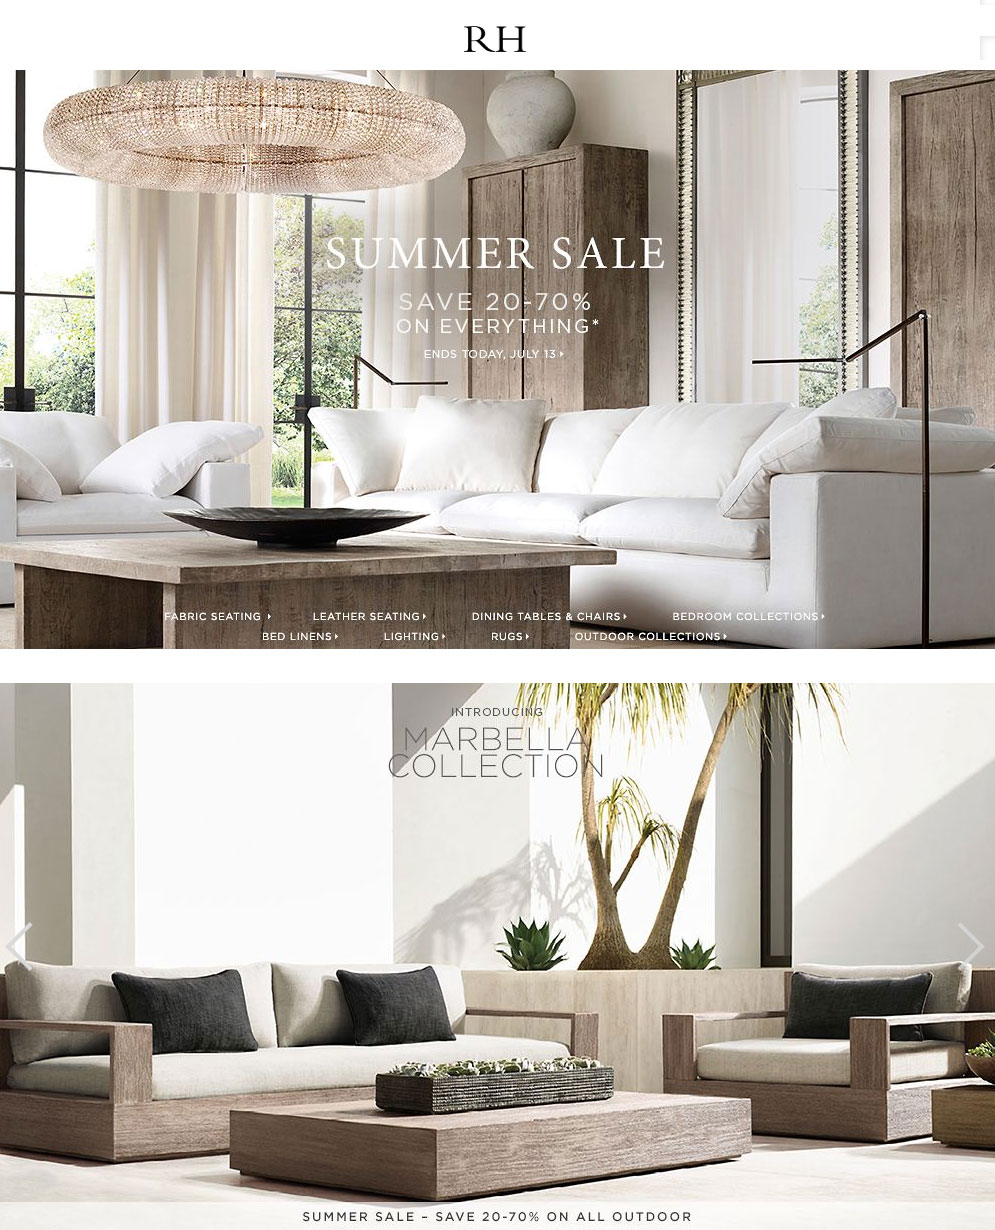 Restoration Hardware Coupon October 2016 20-70% off everything today at Restoration Hardware, ditto online